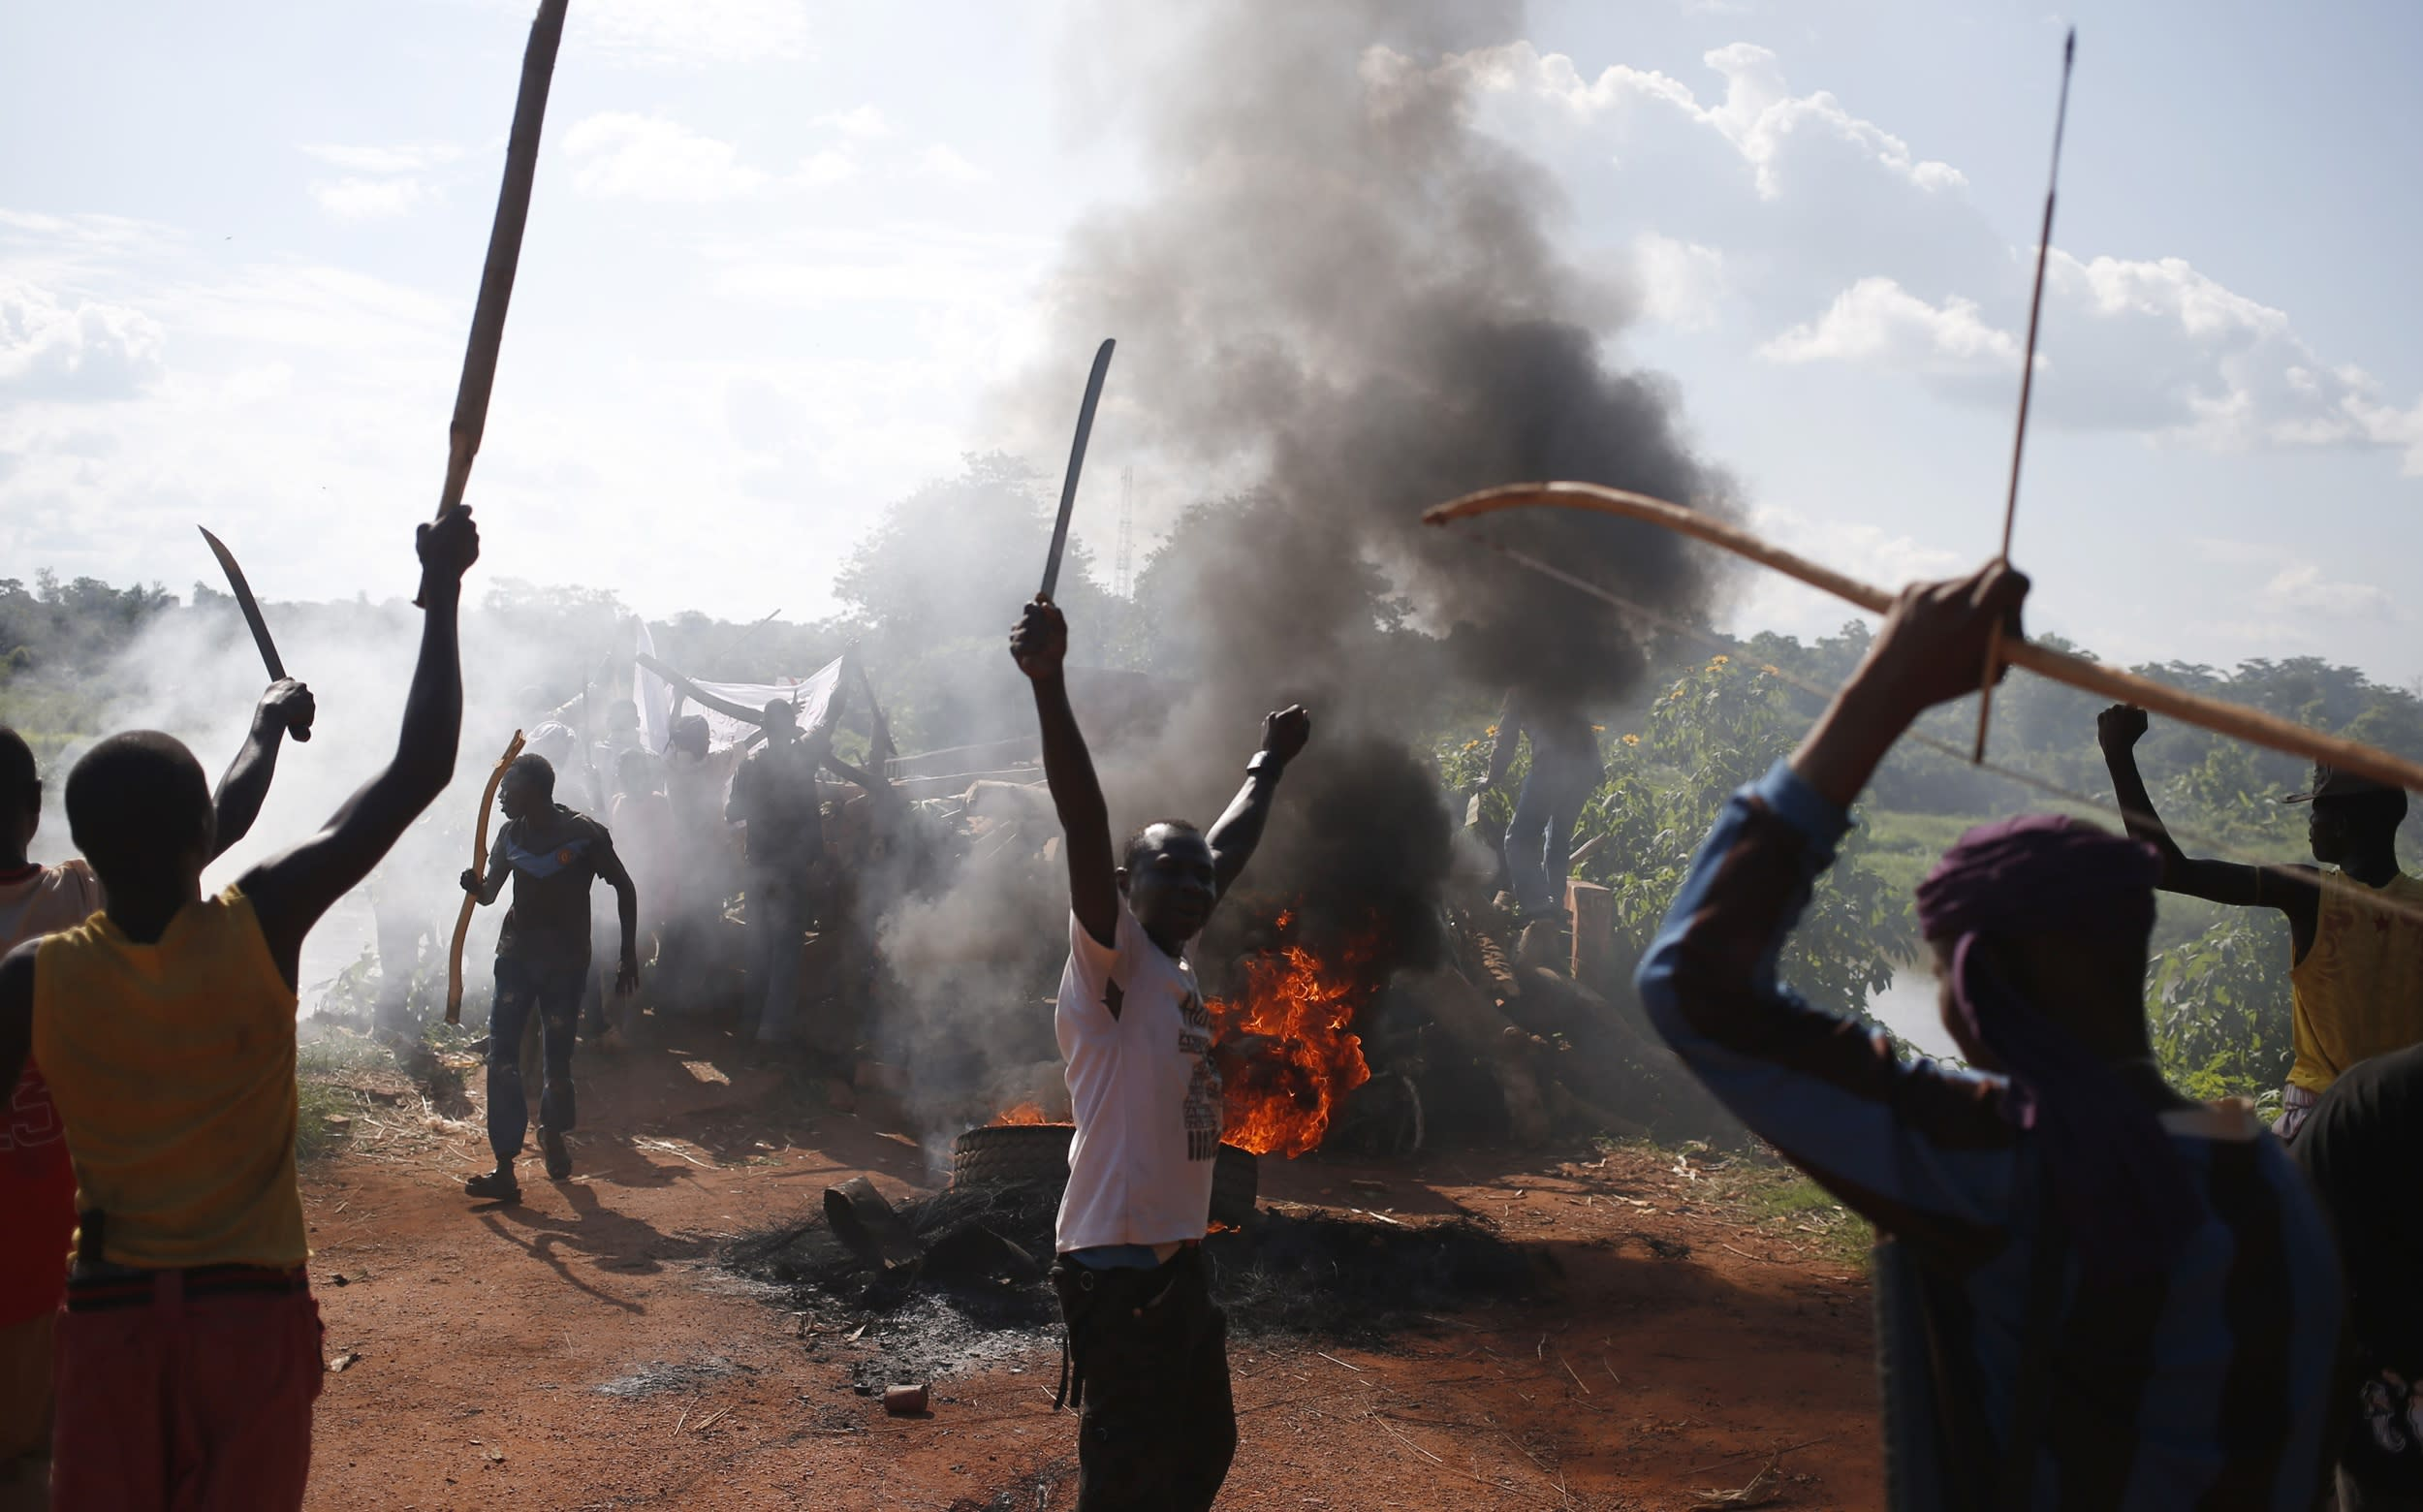 Men gesture in front of a burning barricade during a protest against French soldiers in Bambari May 22, 2014. At least three people were killed in the Central African Republic on Thursday as Muslims with machetes and rifles clashed with French peacekeeping troops trying to disarm rebels, a rebel spokesman said. REUTERS/Goran Tomasevic (CENTRAL AFRICAN REPUBLIC - Tags: CIVIL UNREST POLITICS MILITARY)